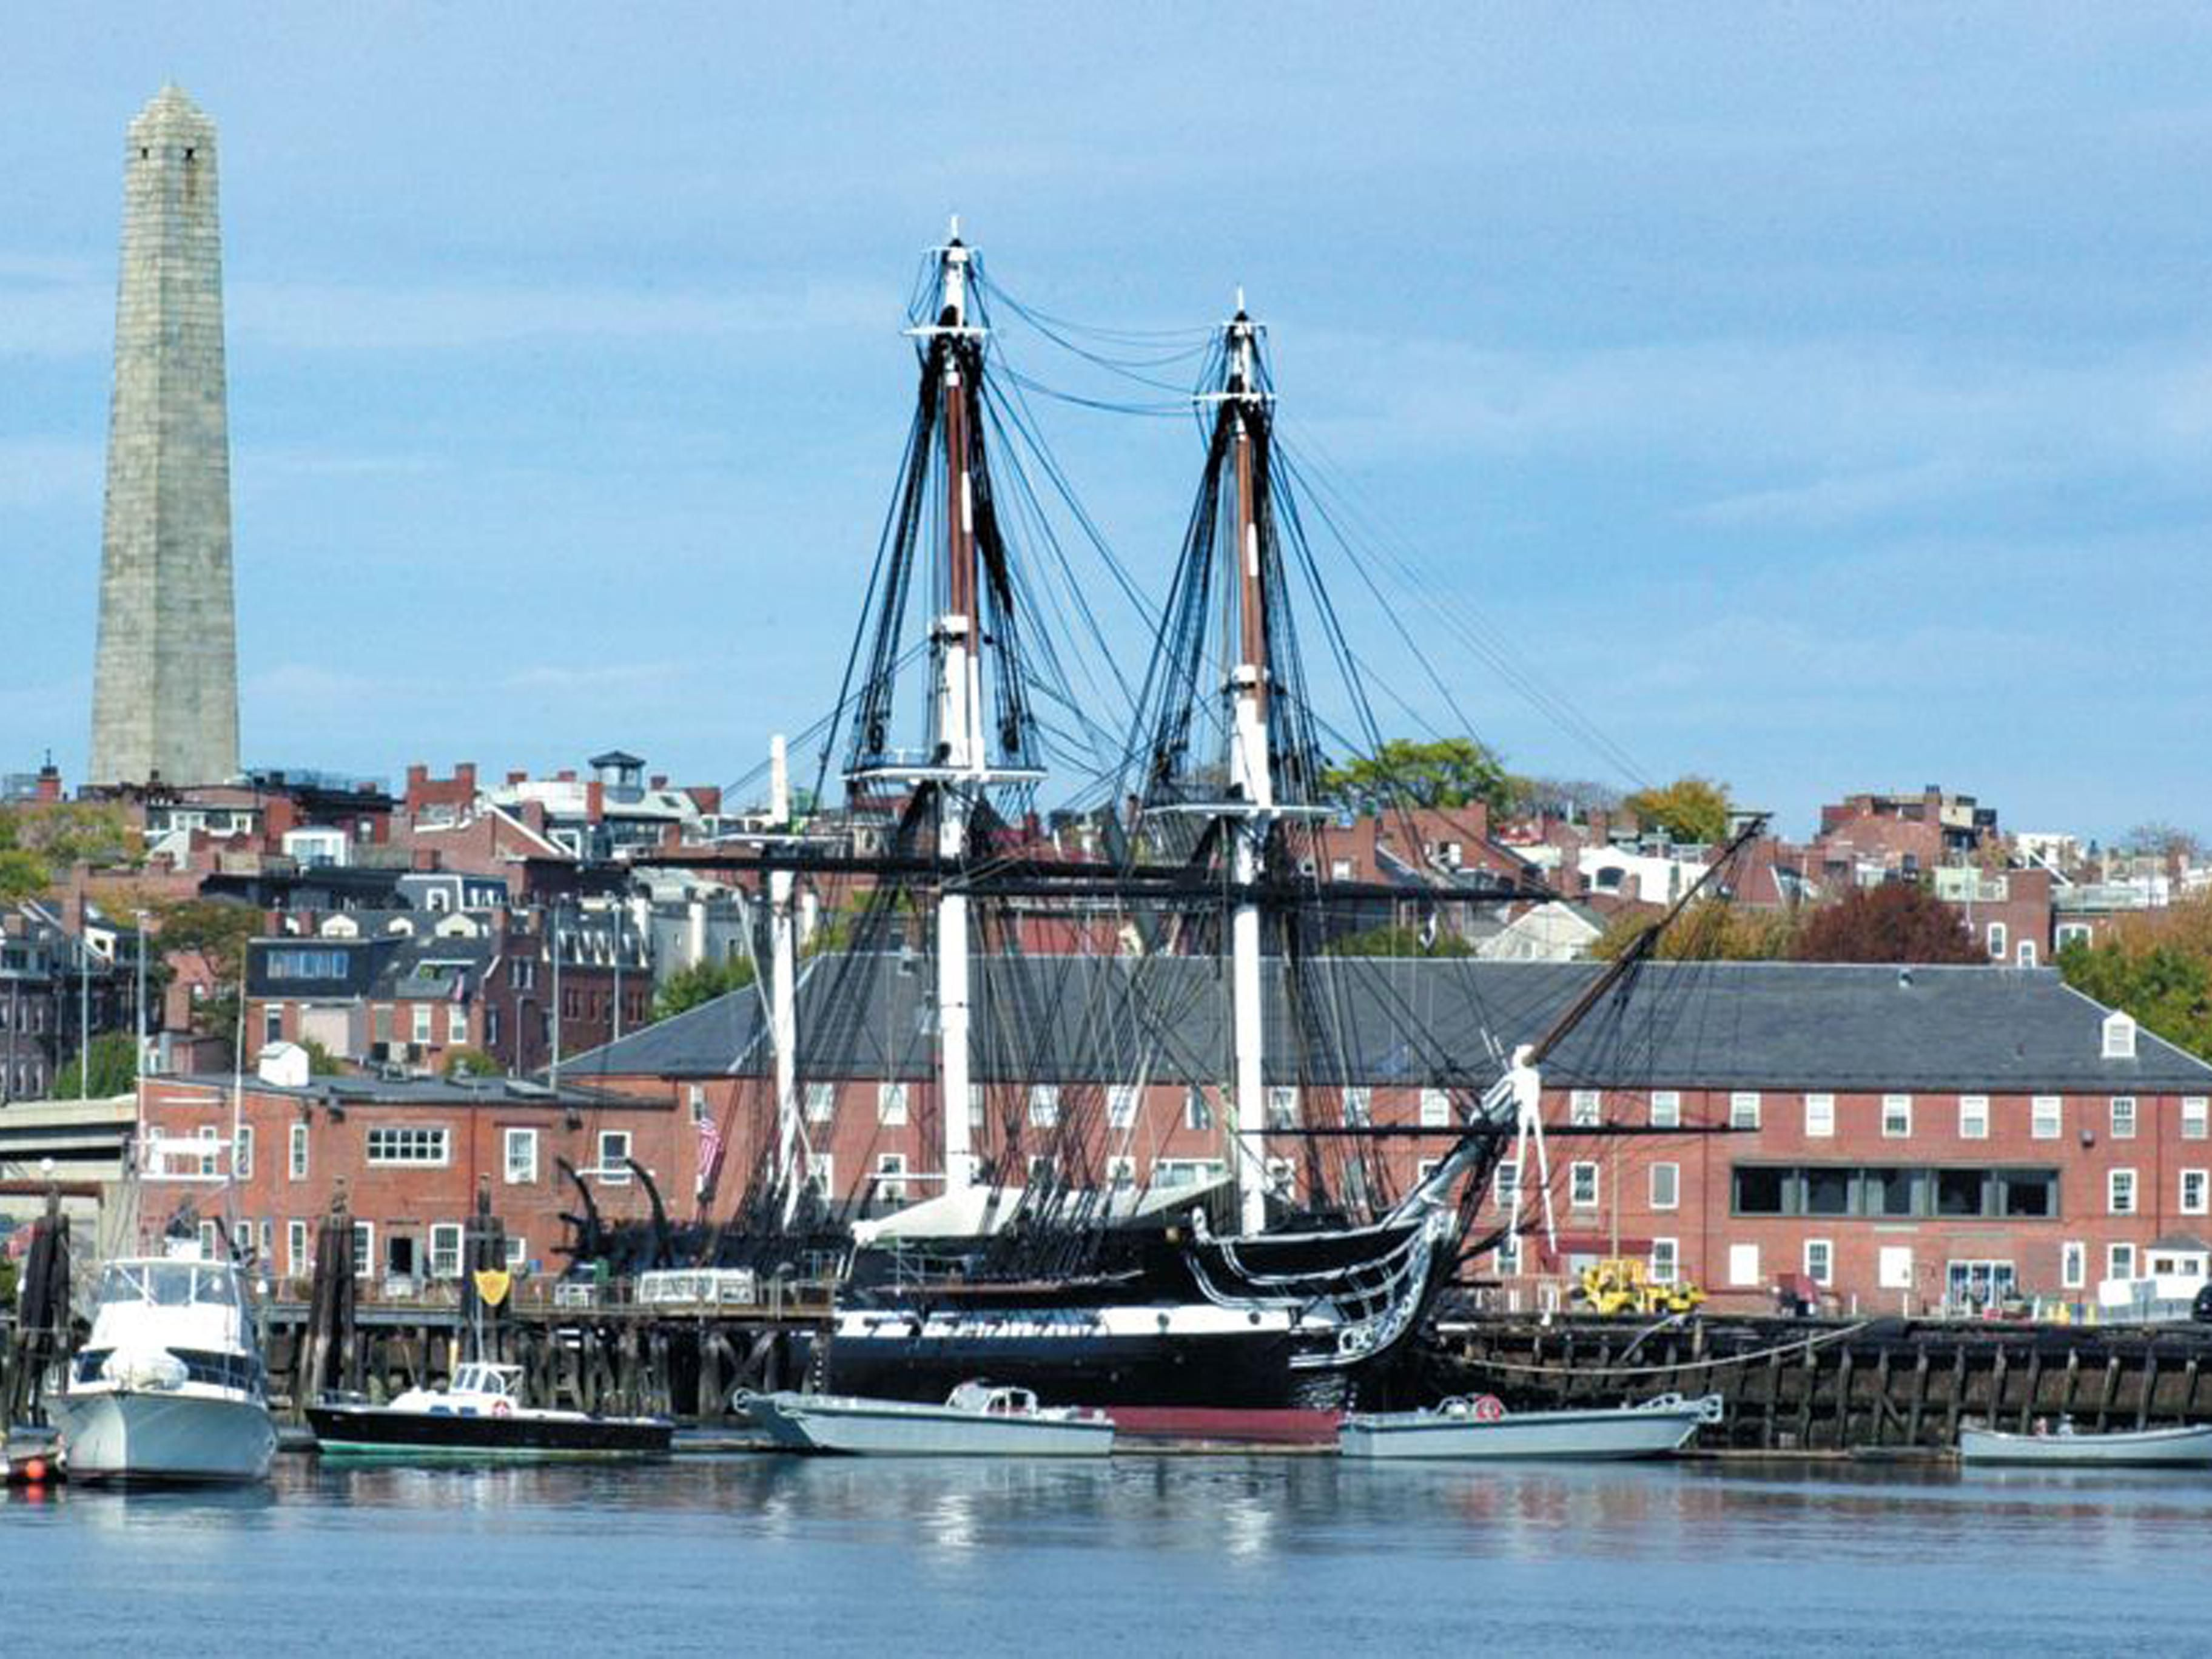 See the historic USS Constitution - Charlestown just 2 miles away.